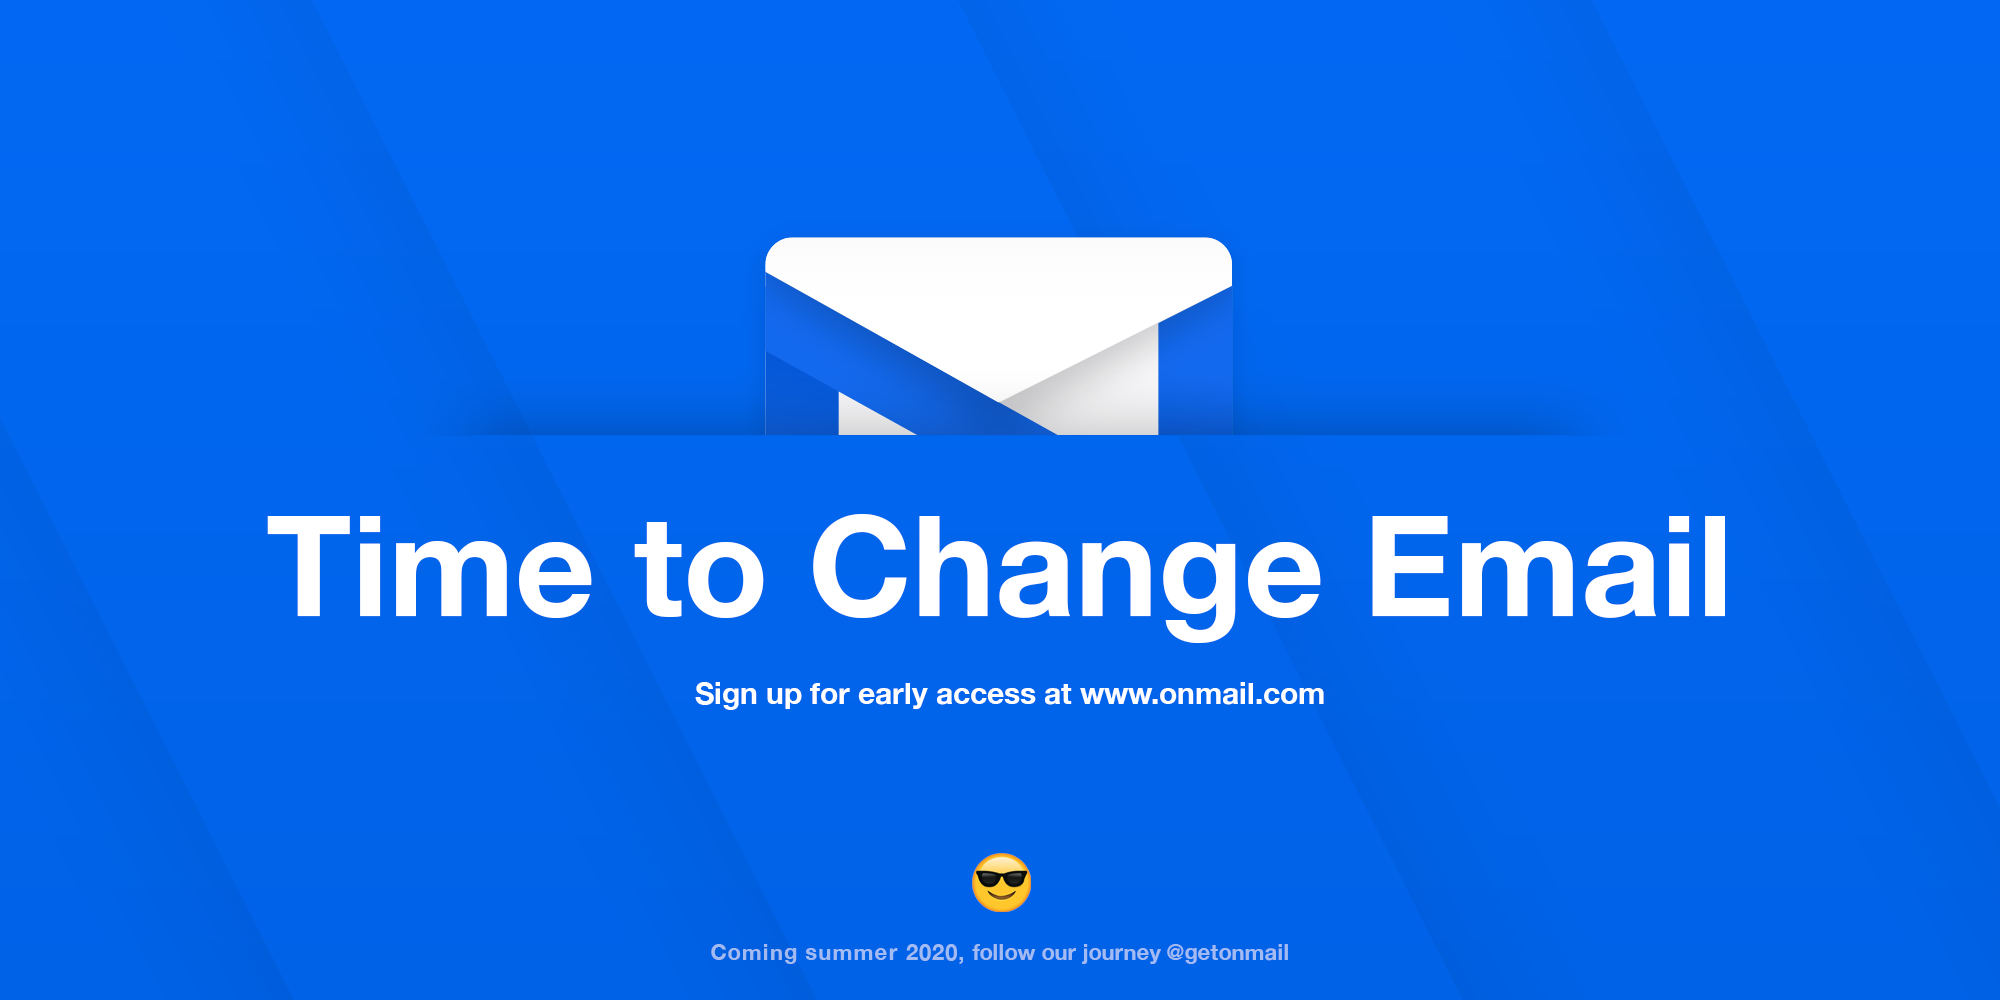 photo of Edison Mail announces new OnMail email service aimed to eliminate clutter image